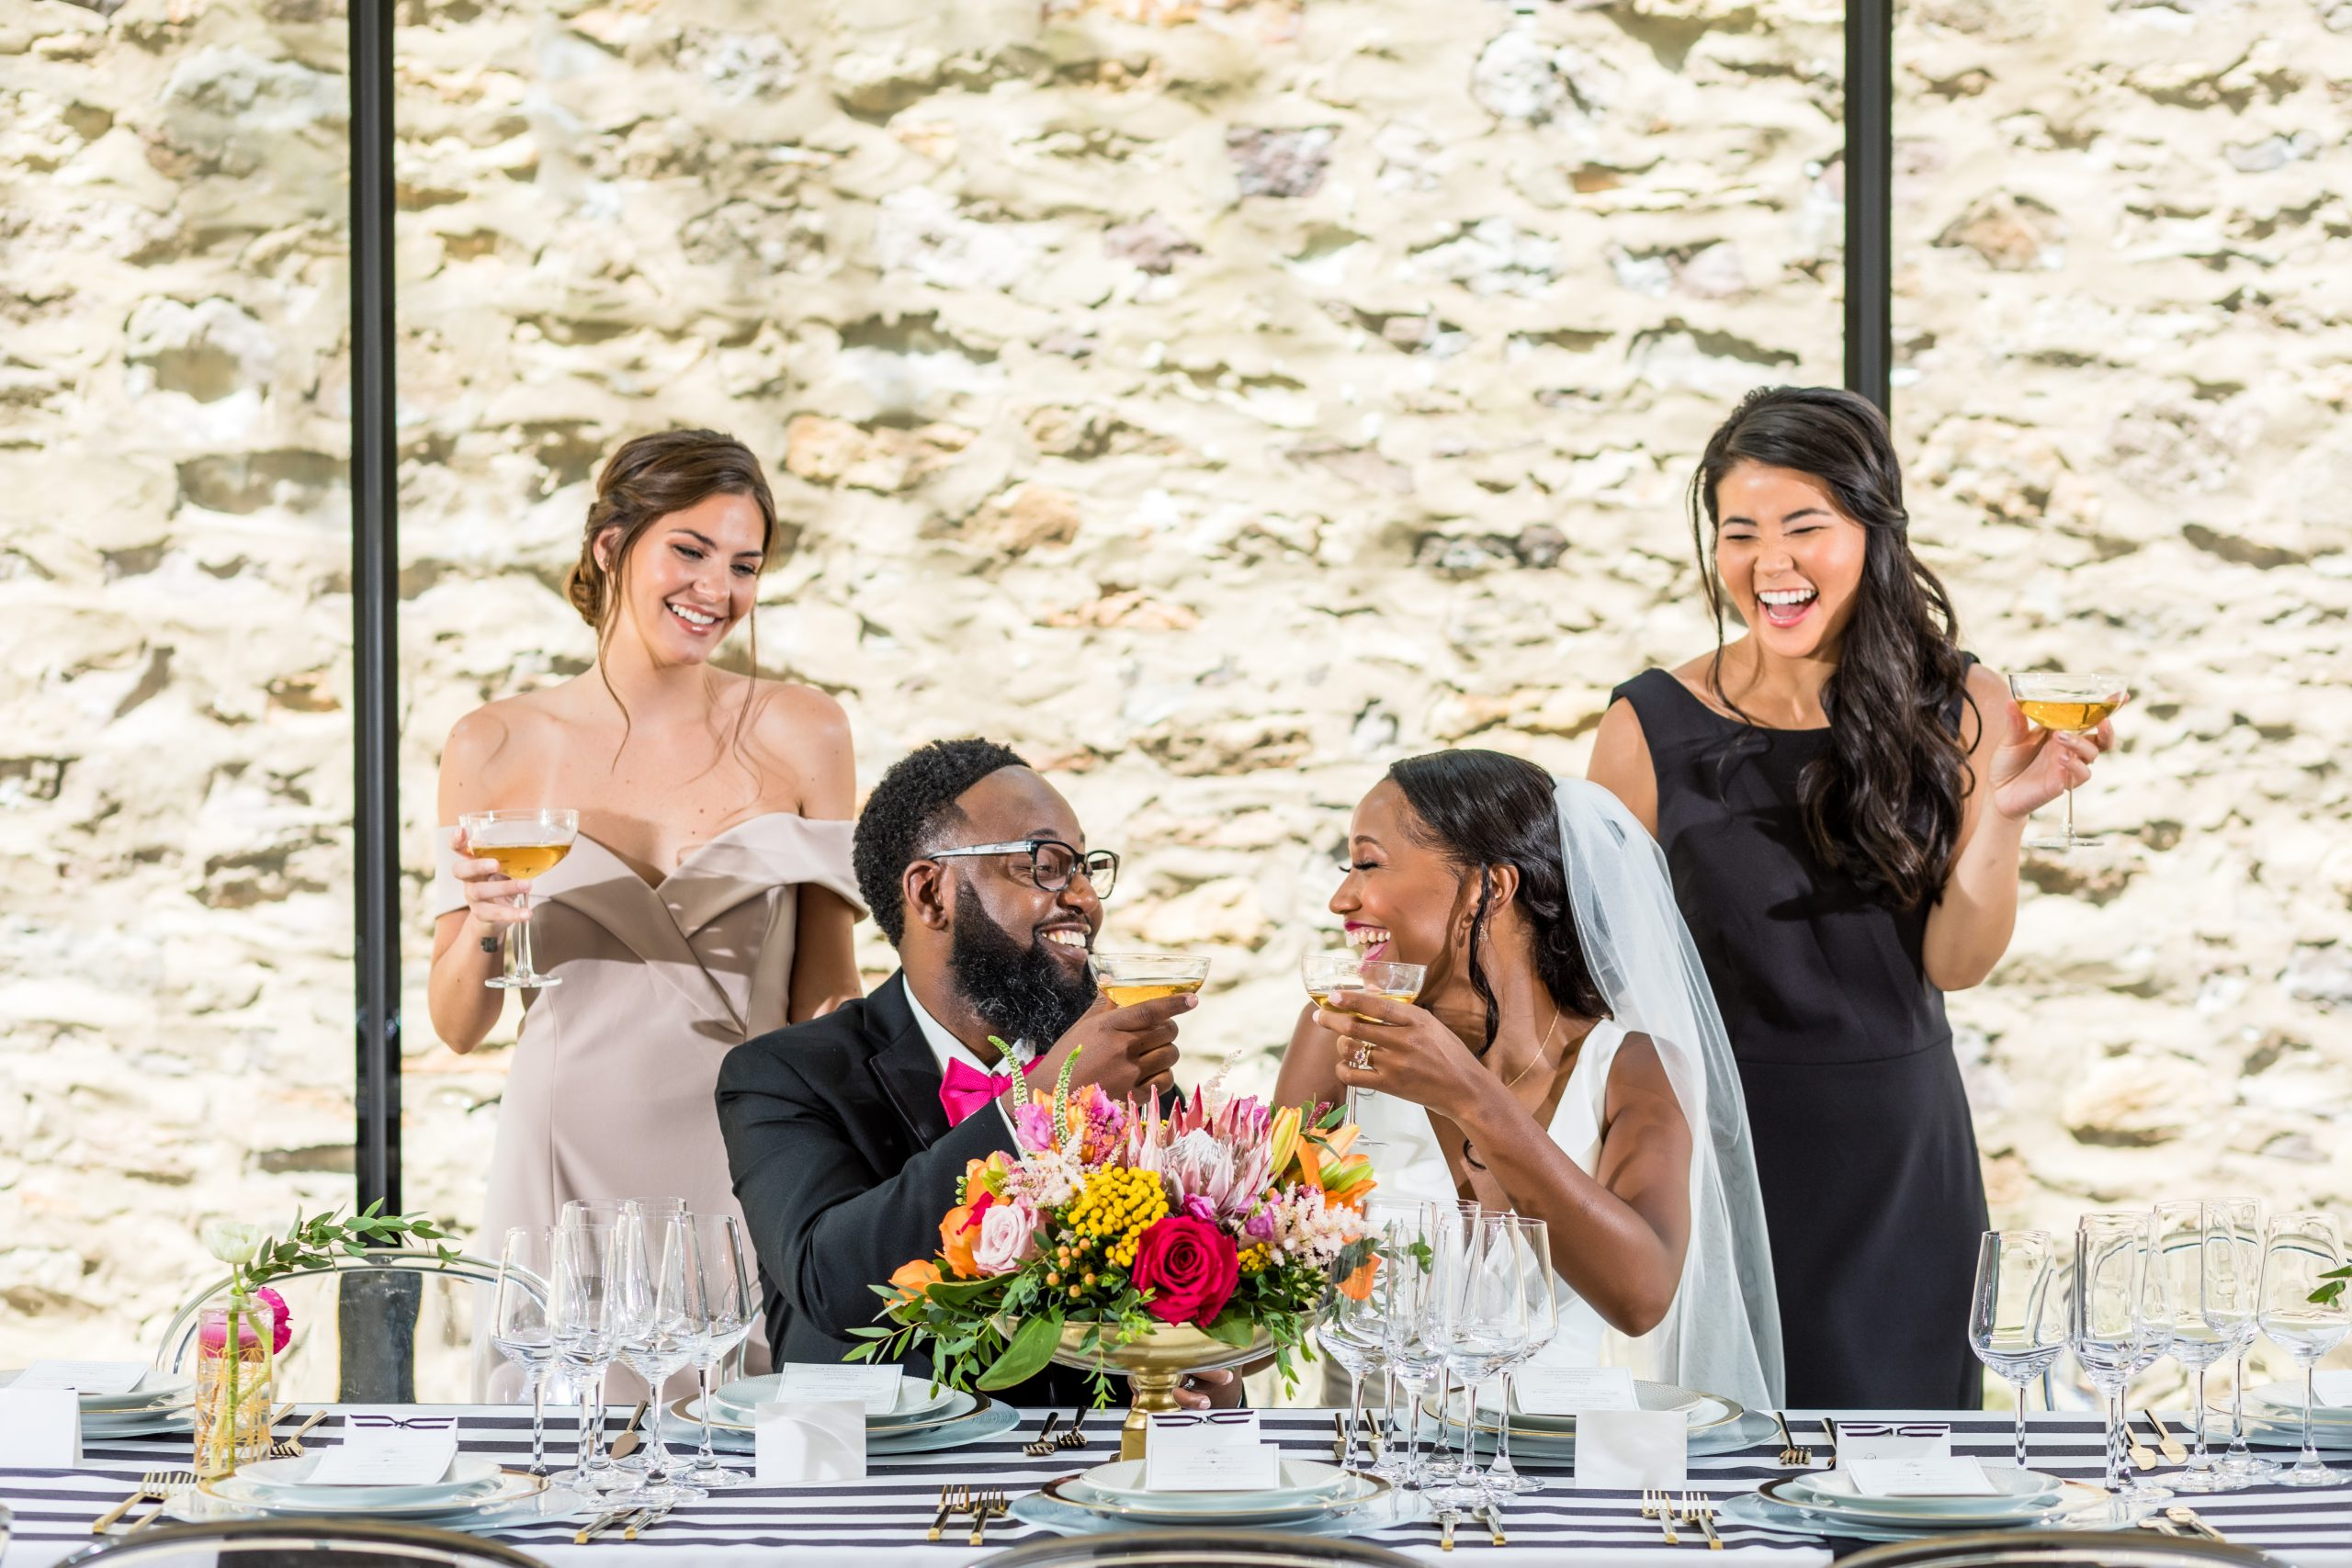 the reception at the Michener Museum styled urban contemporary shoot for Ashley Gerrity Photography this past Summer. Featured on Dream Weddings.